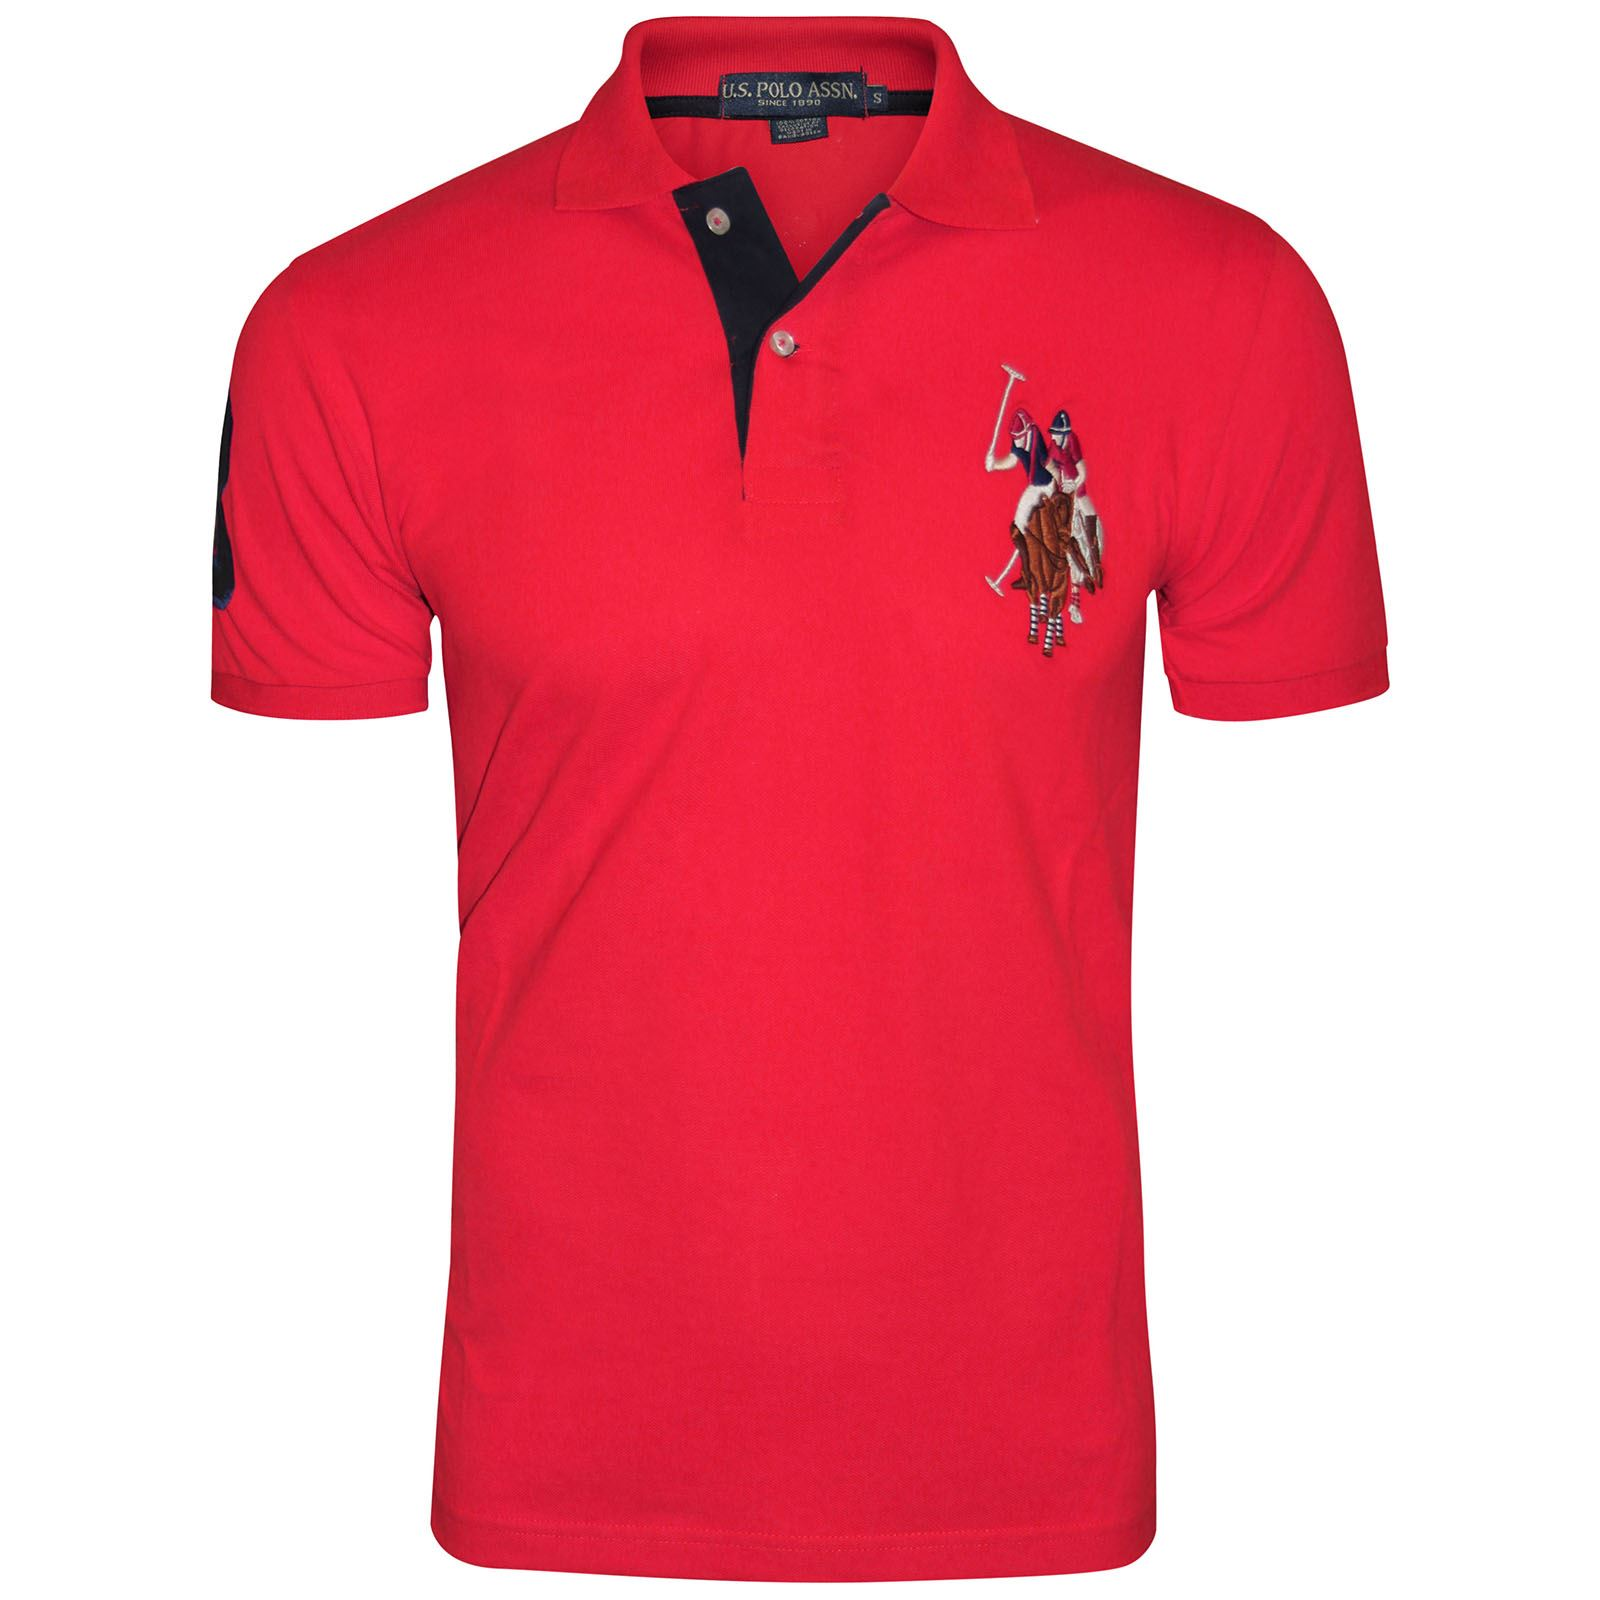 mens us polo assn t shirt original shirt coloured pony top short sleeve cotton ebay. Black Bedroom Furniture Sets. Home Design Ideas